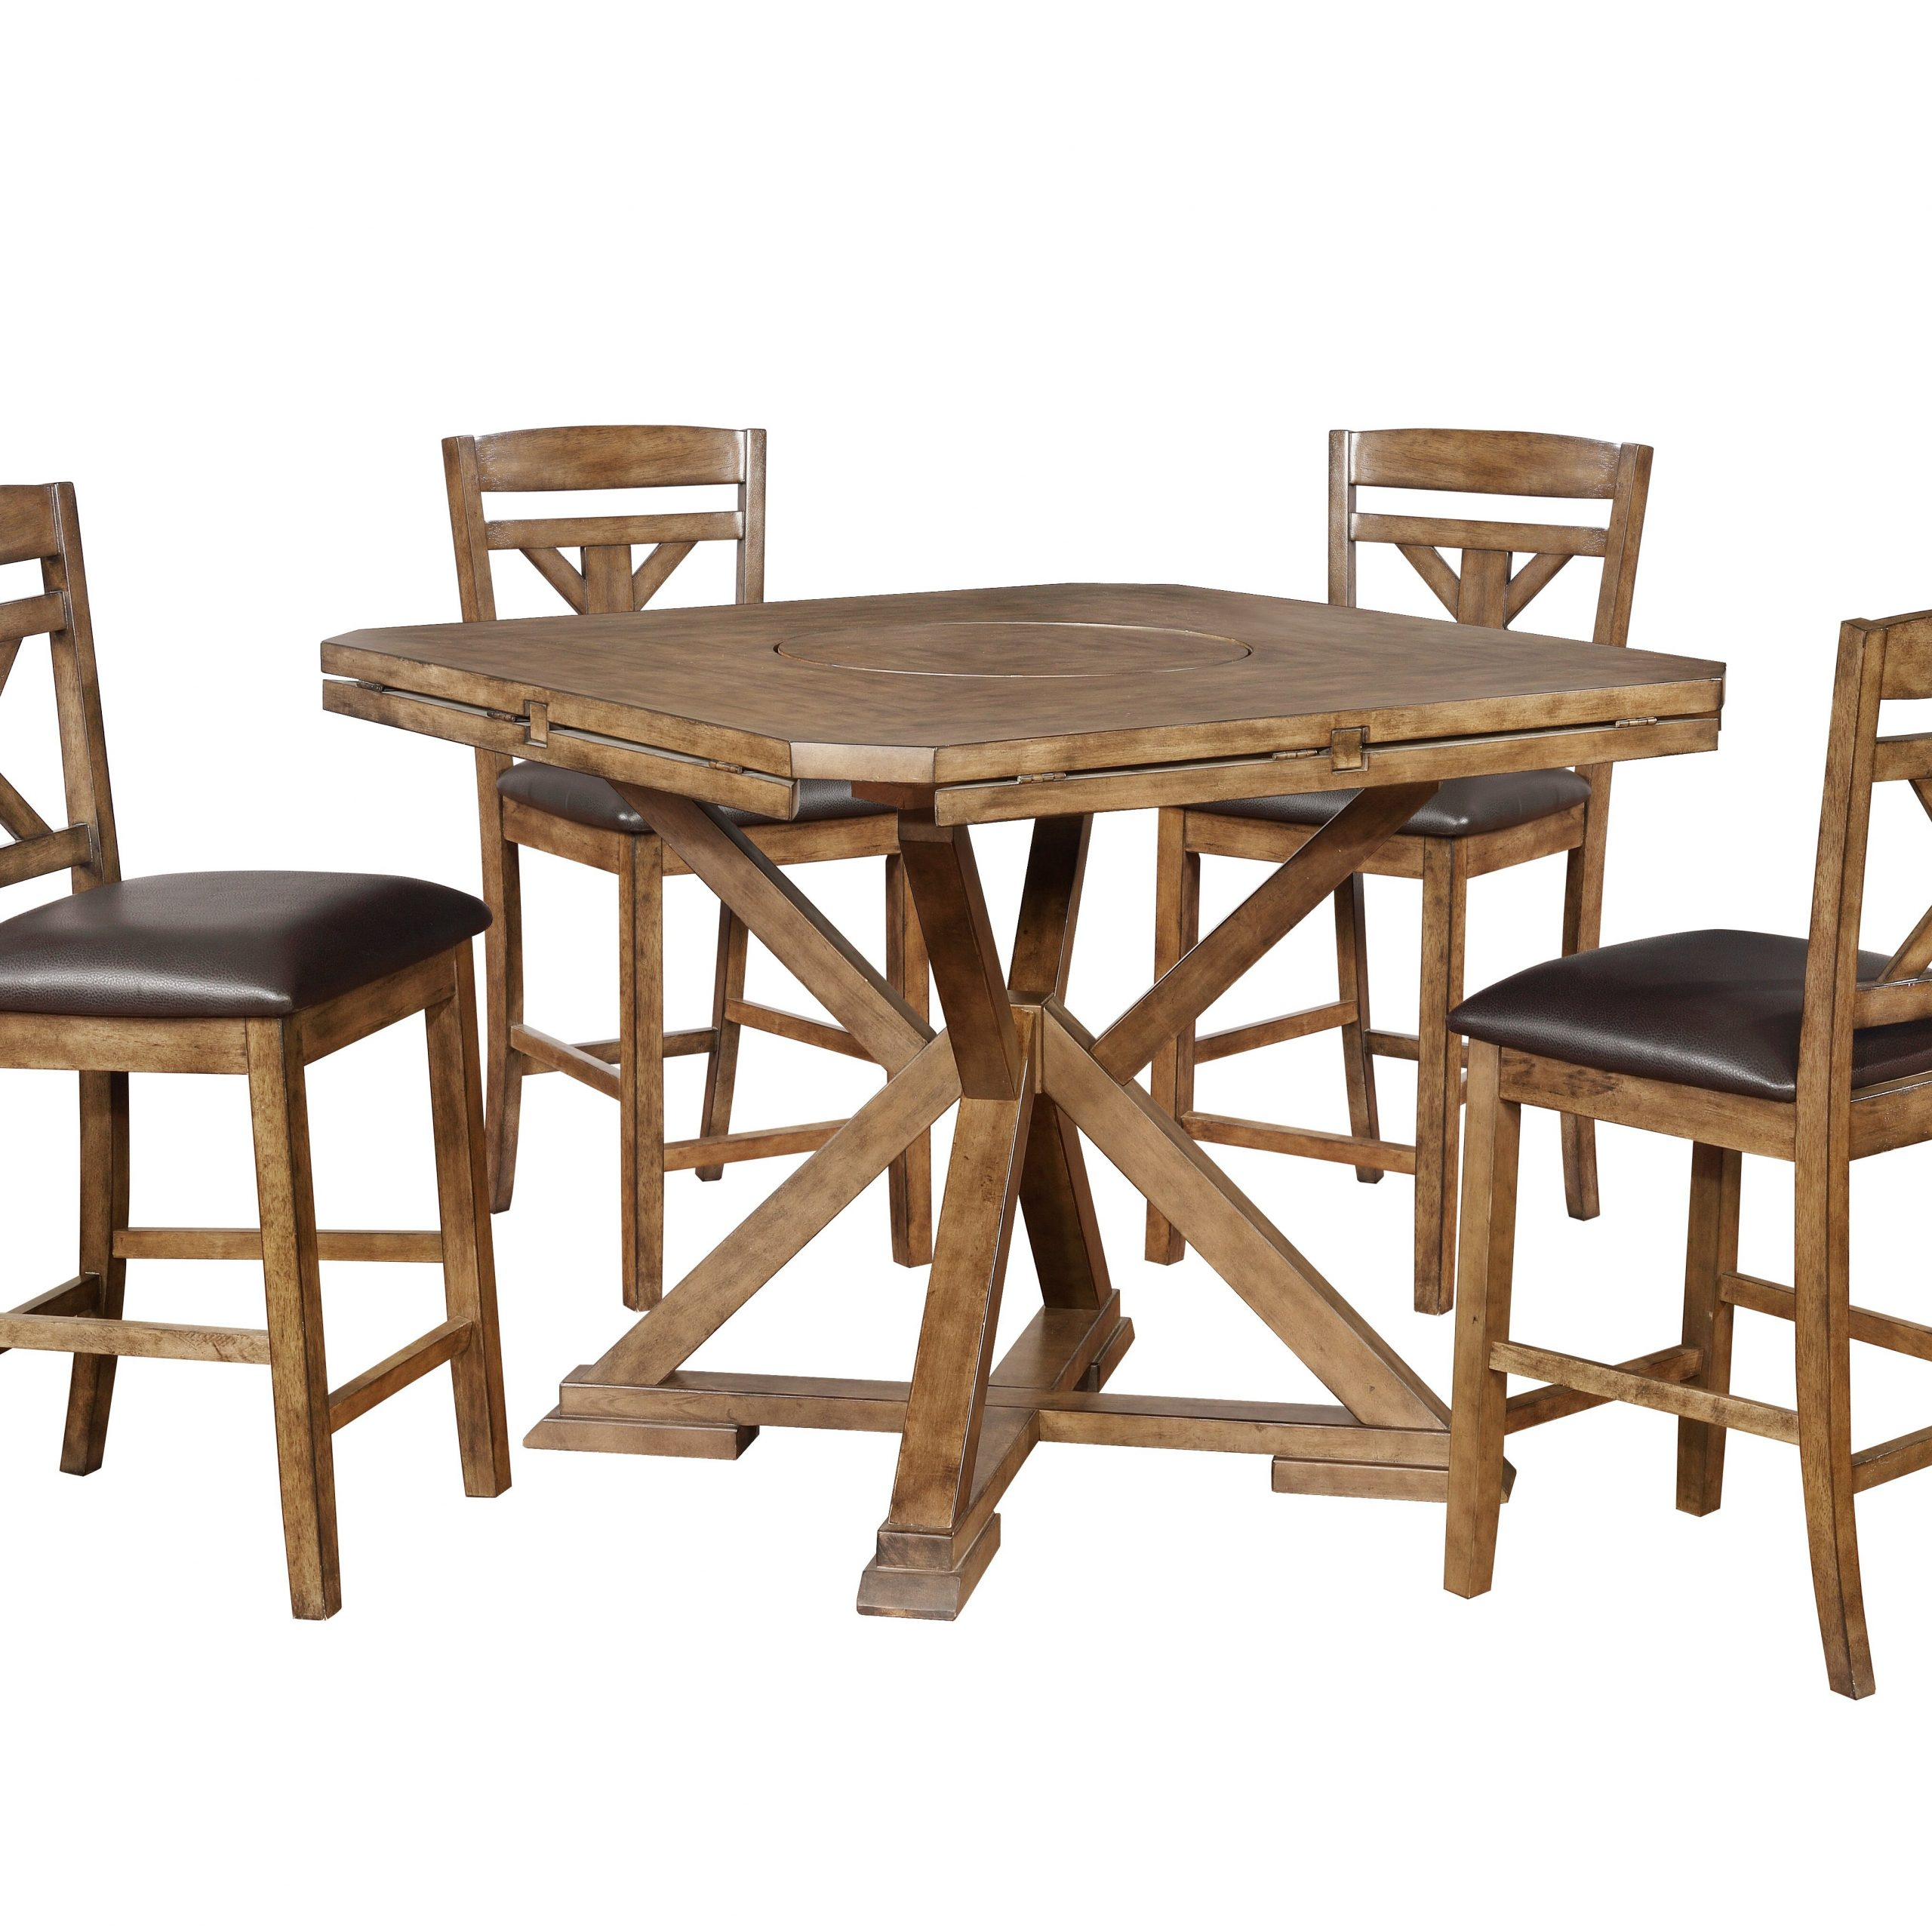 Millwood Pines Chapman 5 Piece Drop Leaf Dining Set | Wayfair For Most Popular Chapman Round Marble Dining Tables (View 14 of 25)